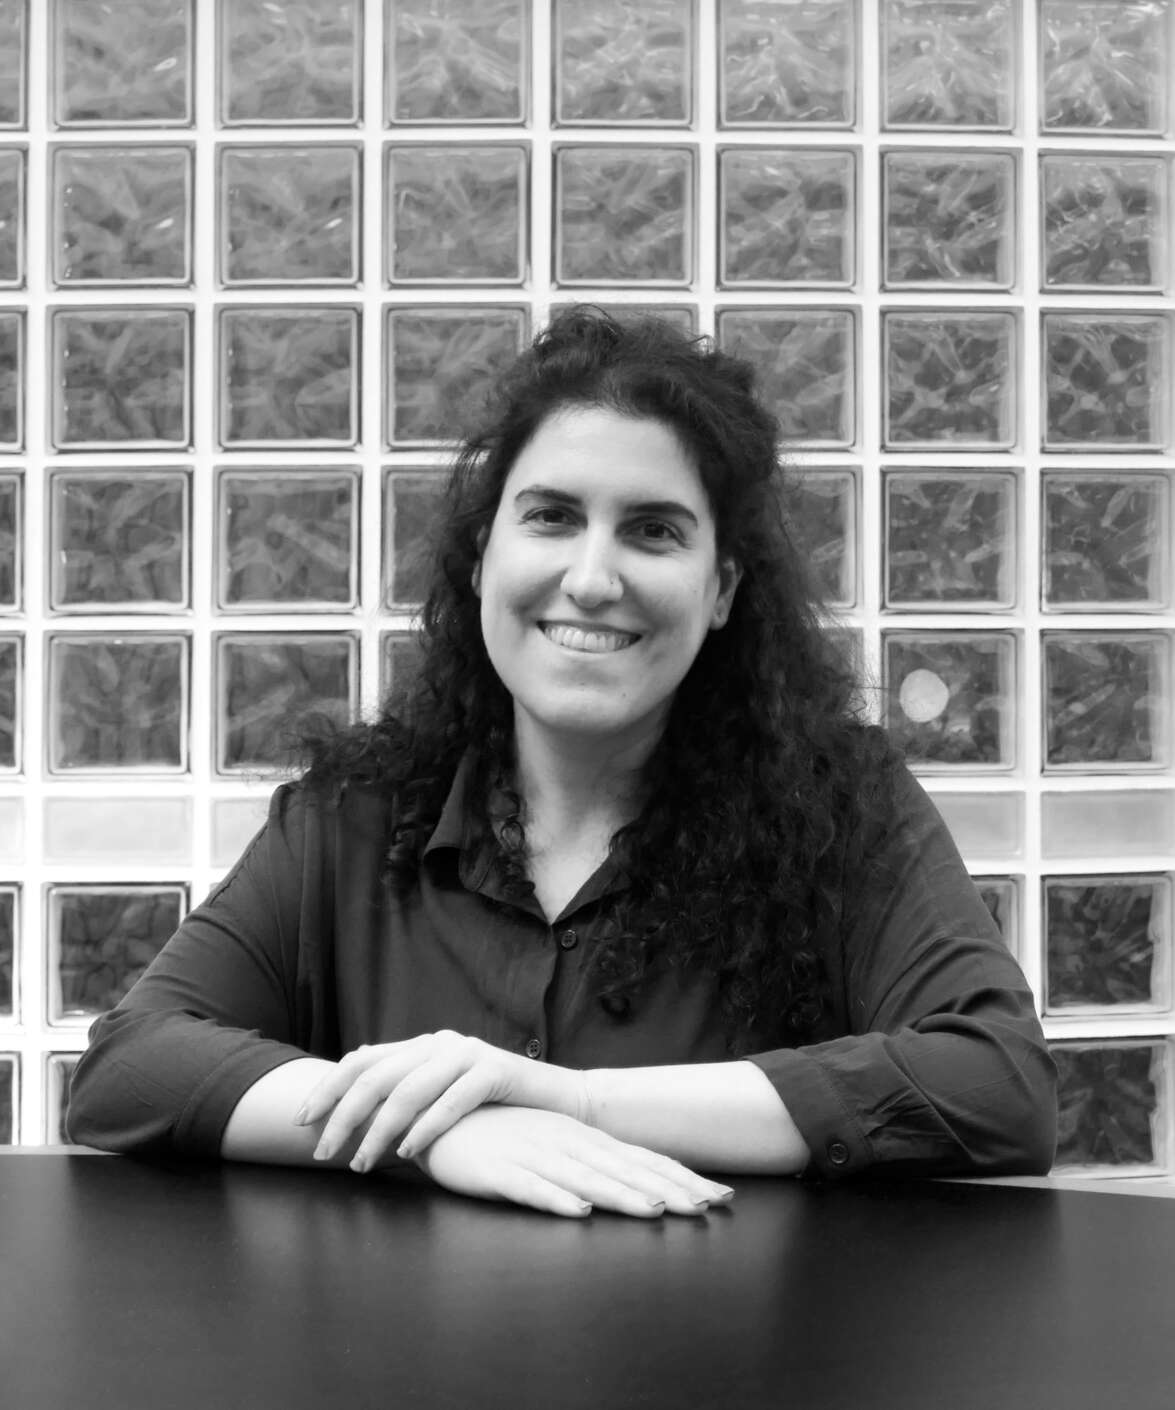 We welcome Eleni Flouda to our team